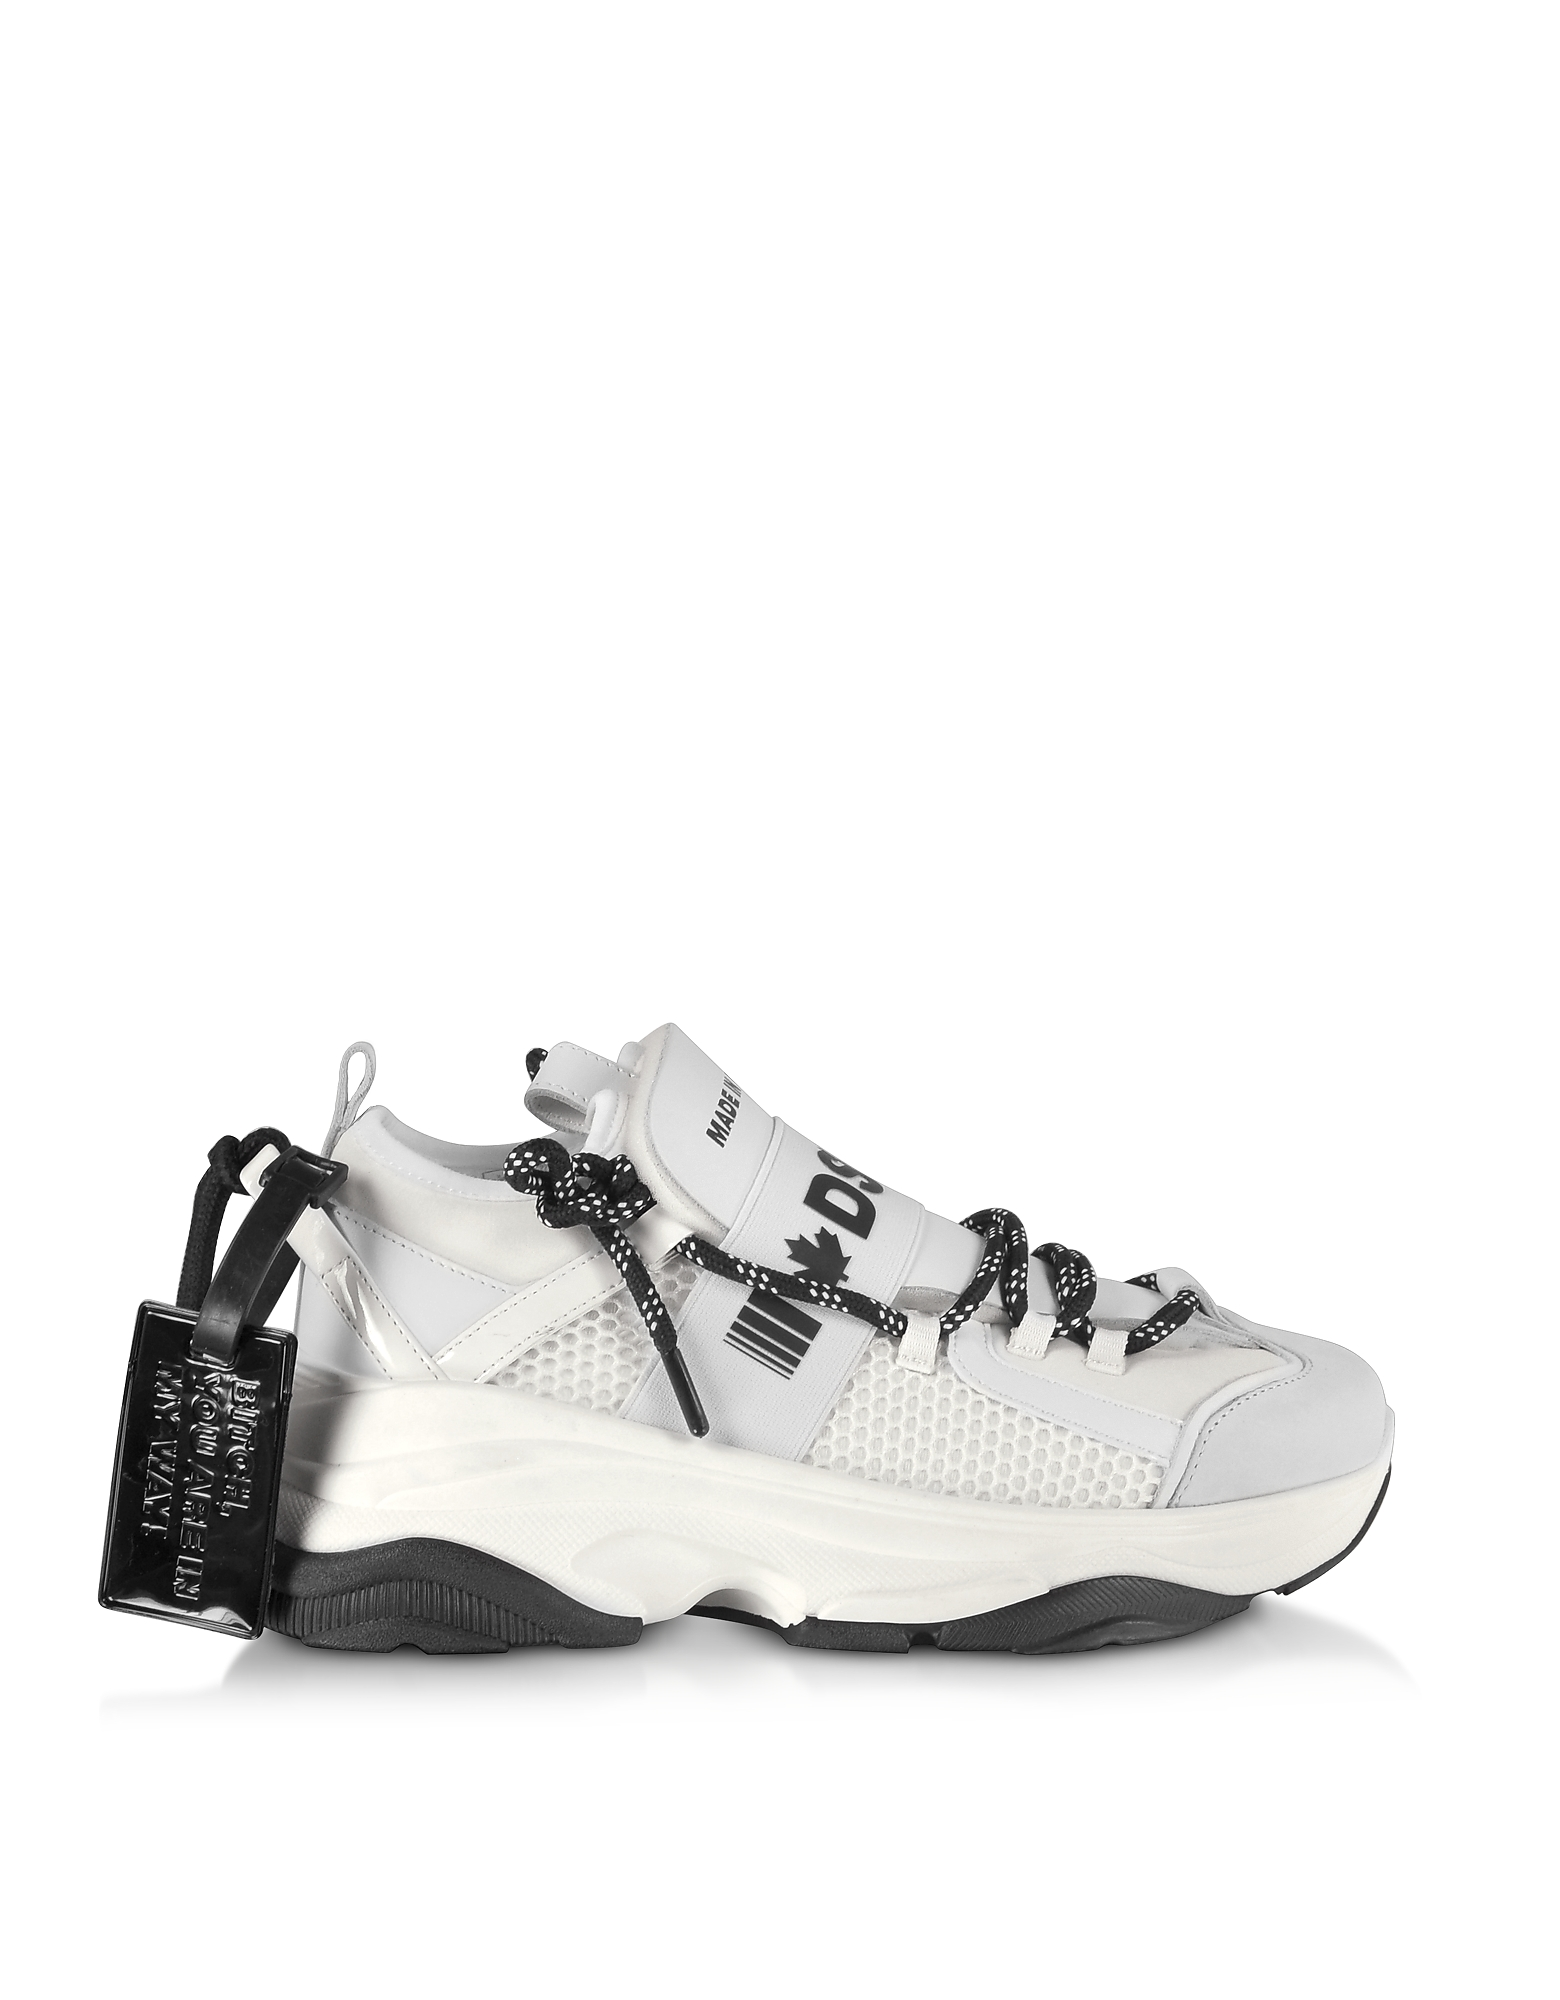 Neoprene and Leather Women's Sneakers